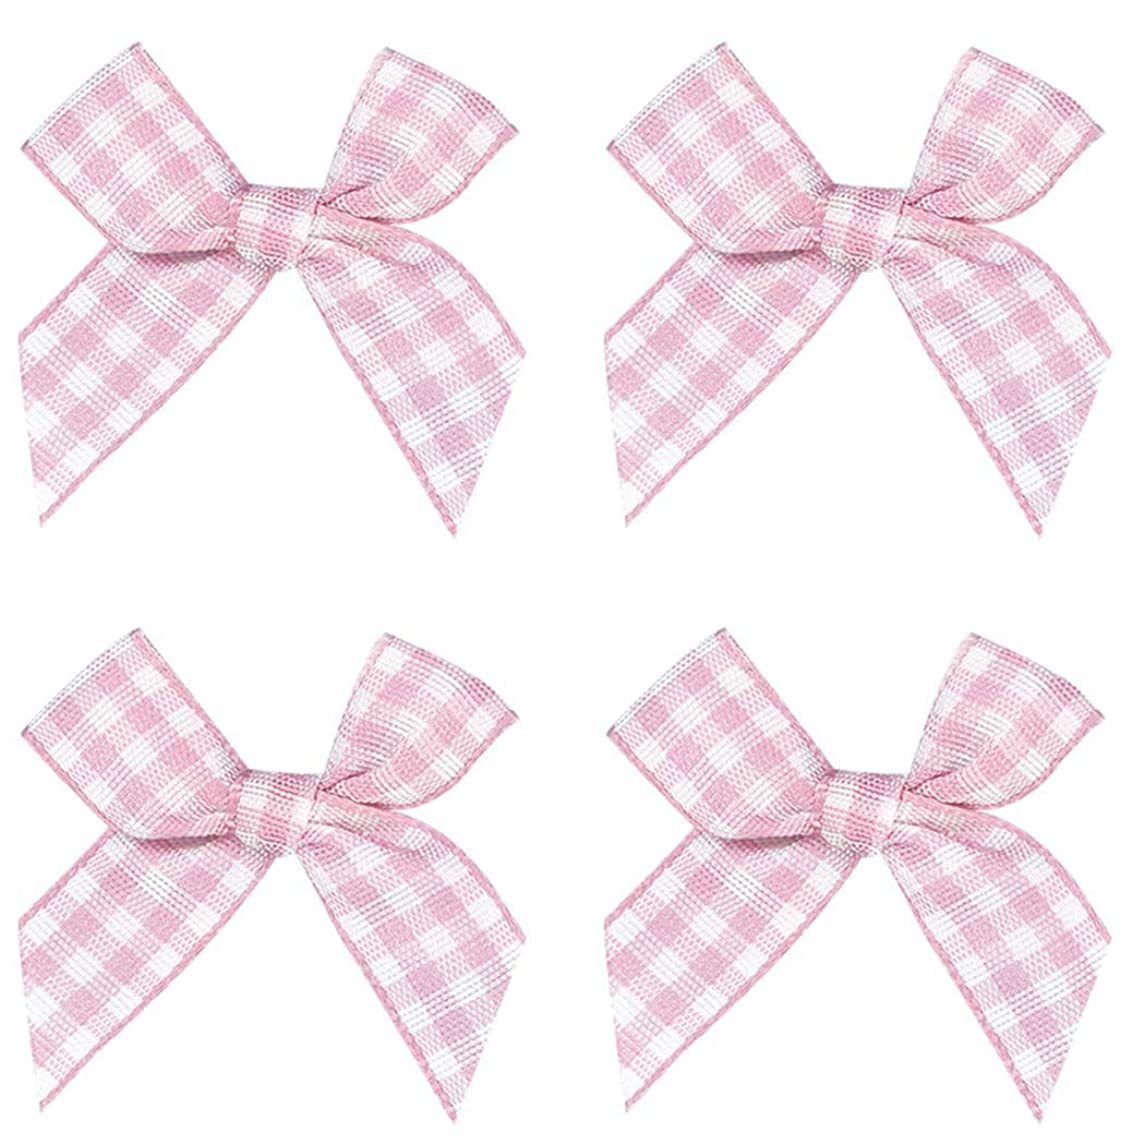 50pcs Mini Gingham Ribbon Bows Checkered Ribbon Flowers Plaid Ribbon Bow Appliques DIY Craft for Sewing, Scrapbooking, Wedding, Gift (Pink and White)